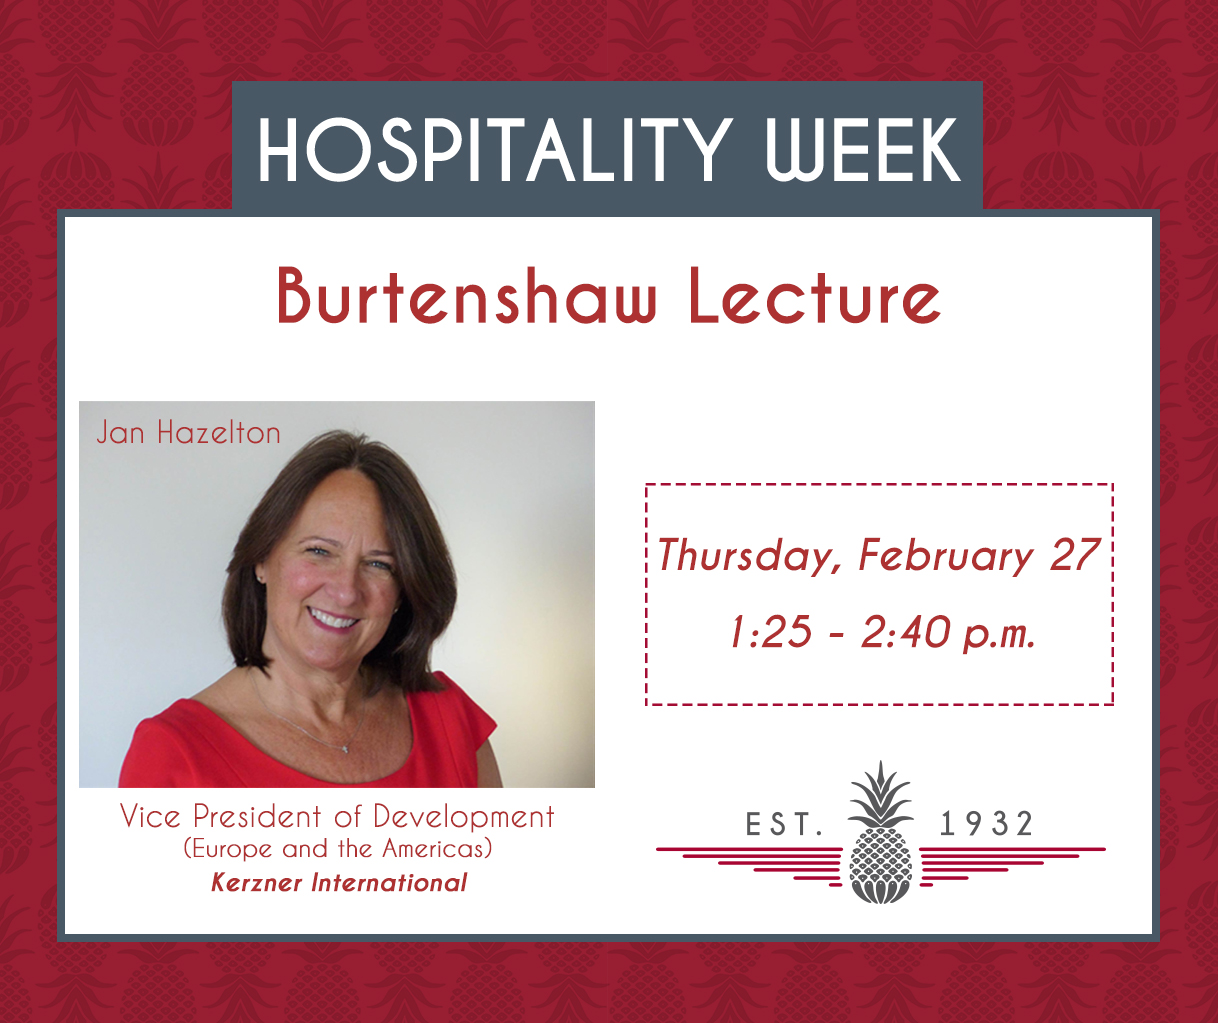 Graphic: Hospitality Week Burtenshaw Lecture Thursday February 27 featuring speaker Jan Hazelton, Vice President of Development Europe and Americas for Kerzner International.